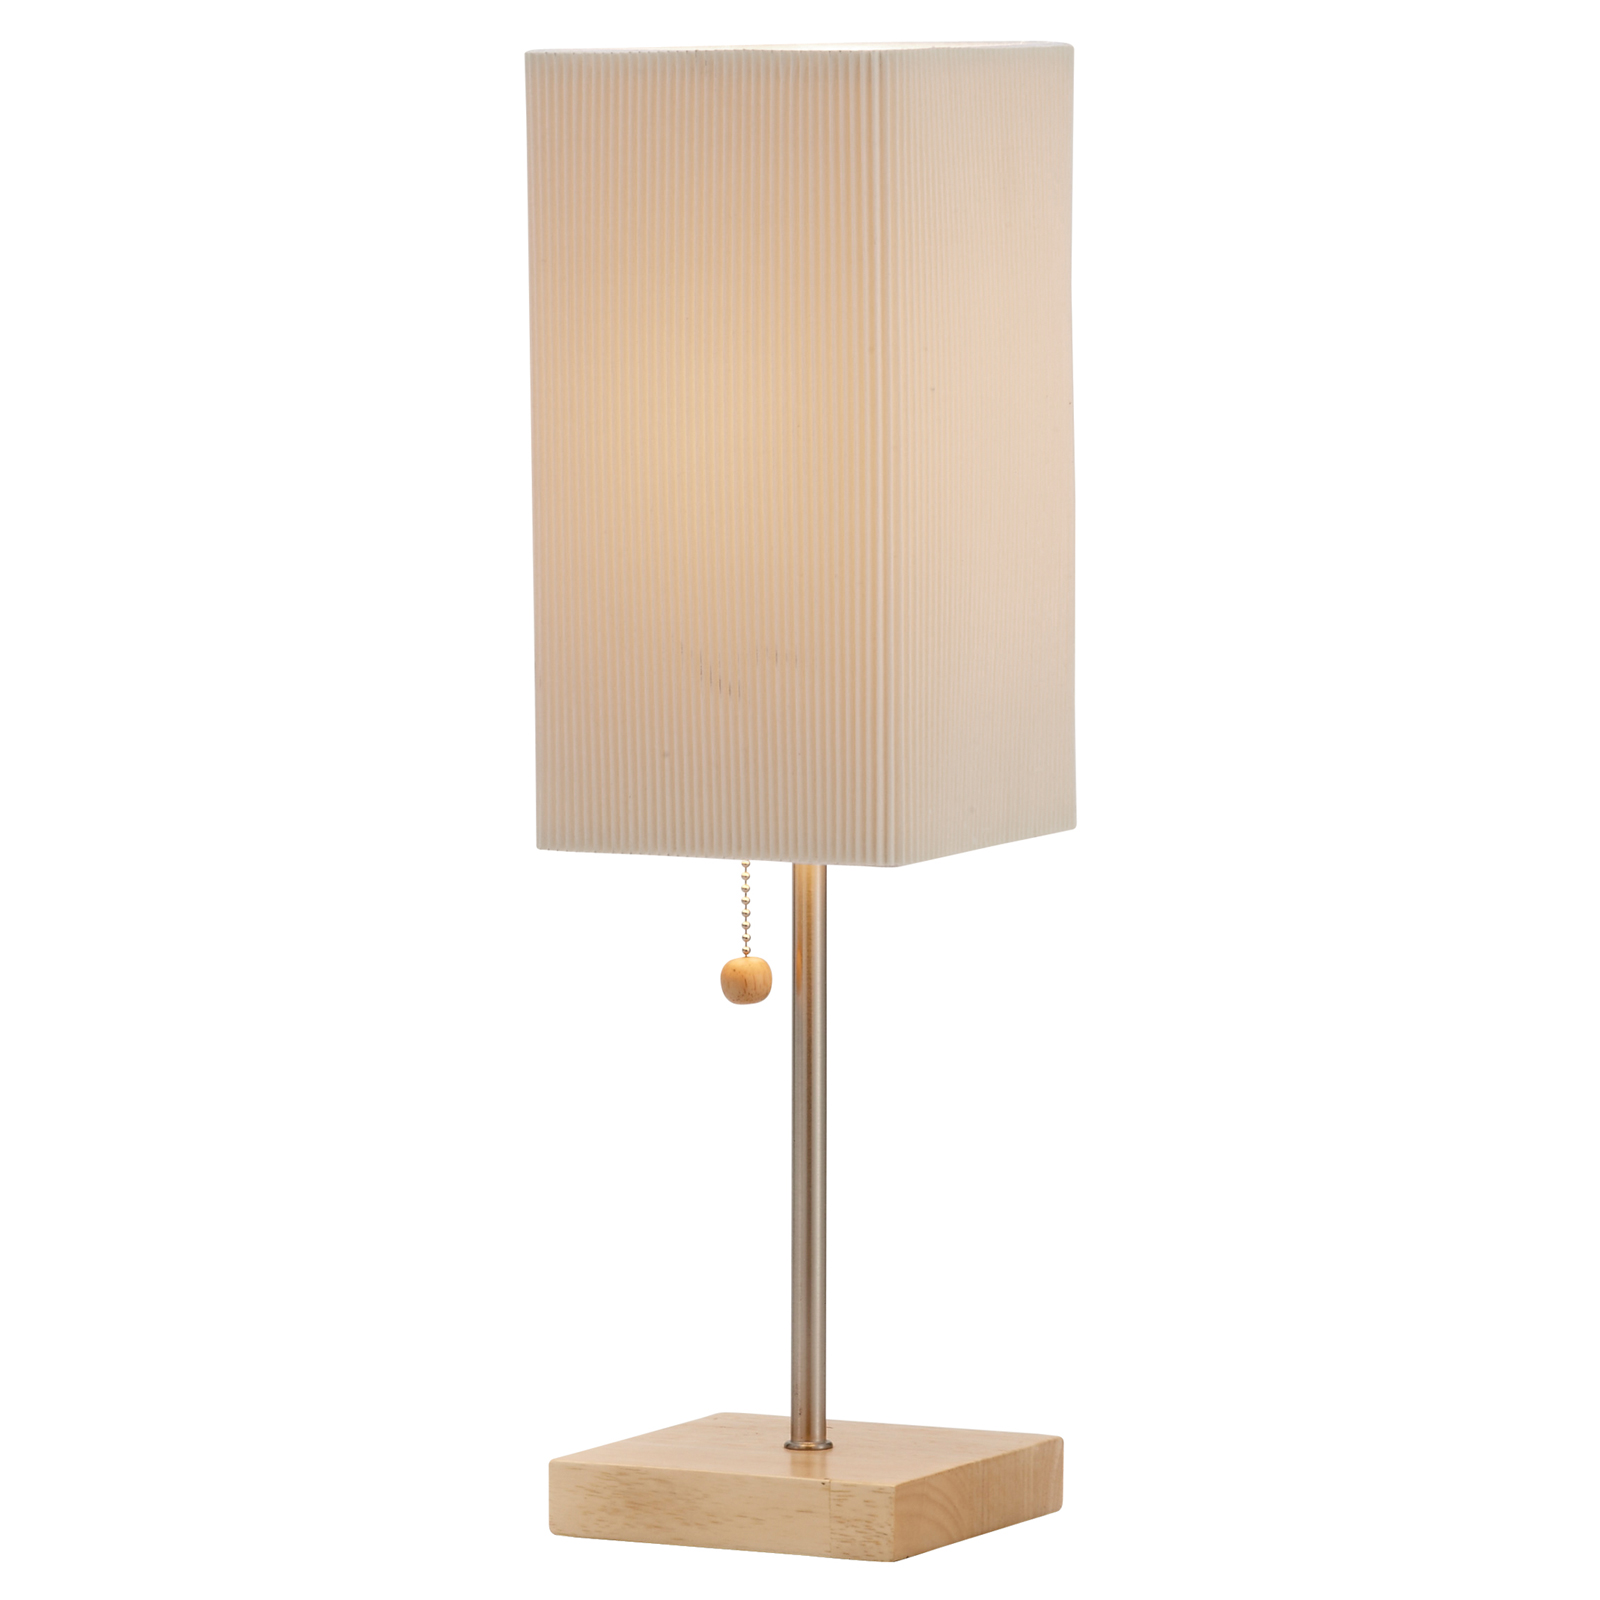 Angelina Table Lamp With Corrugated Shade By Adesso In Table Lamps